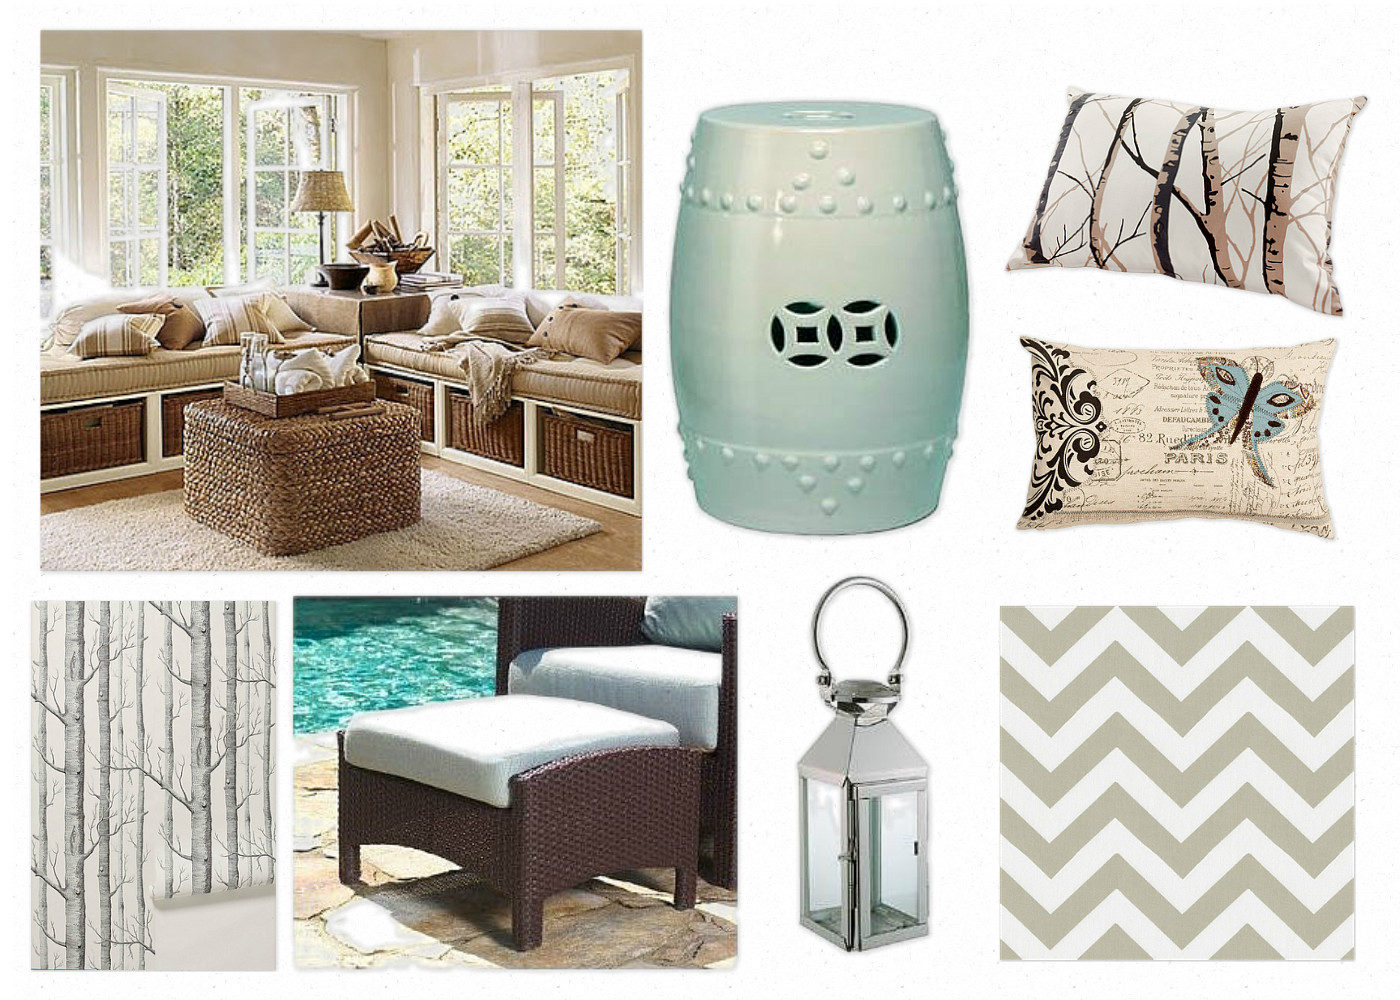 room ideas for decorating a sunroom